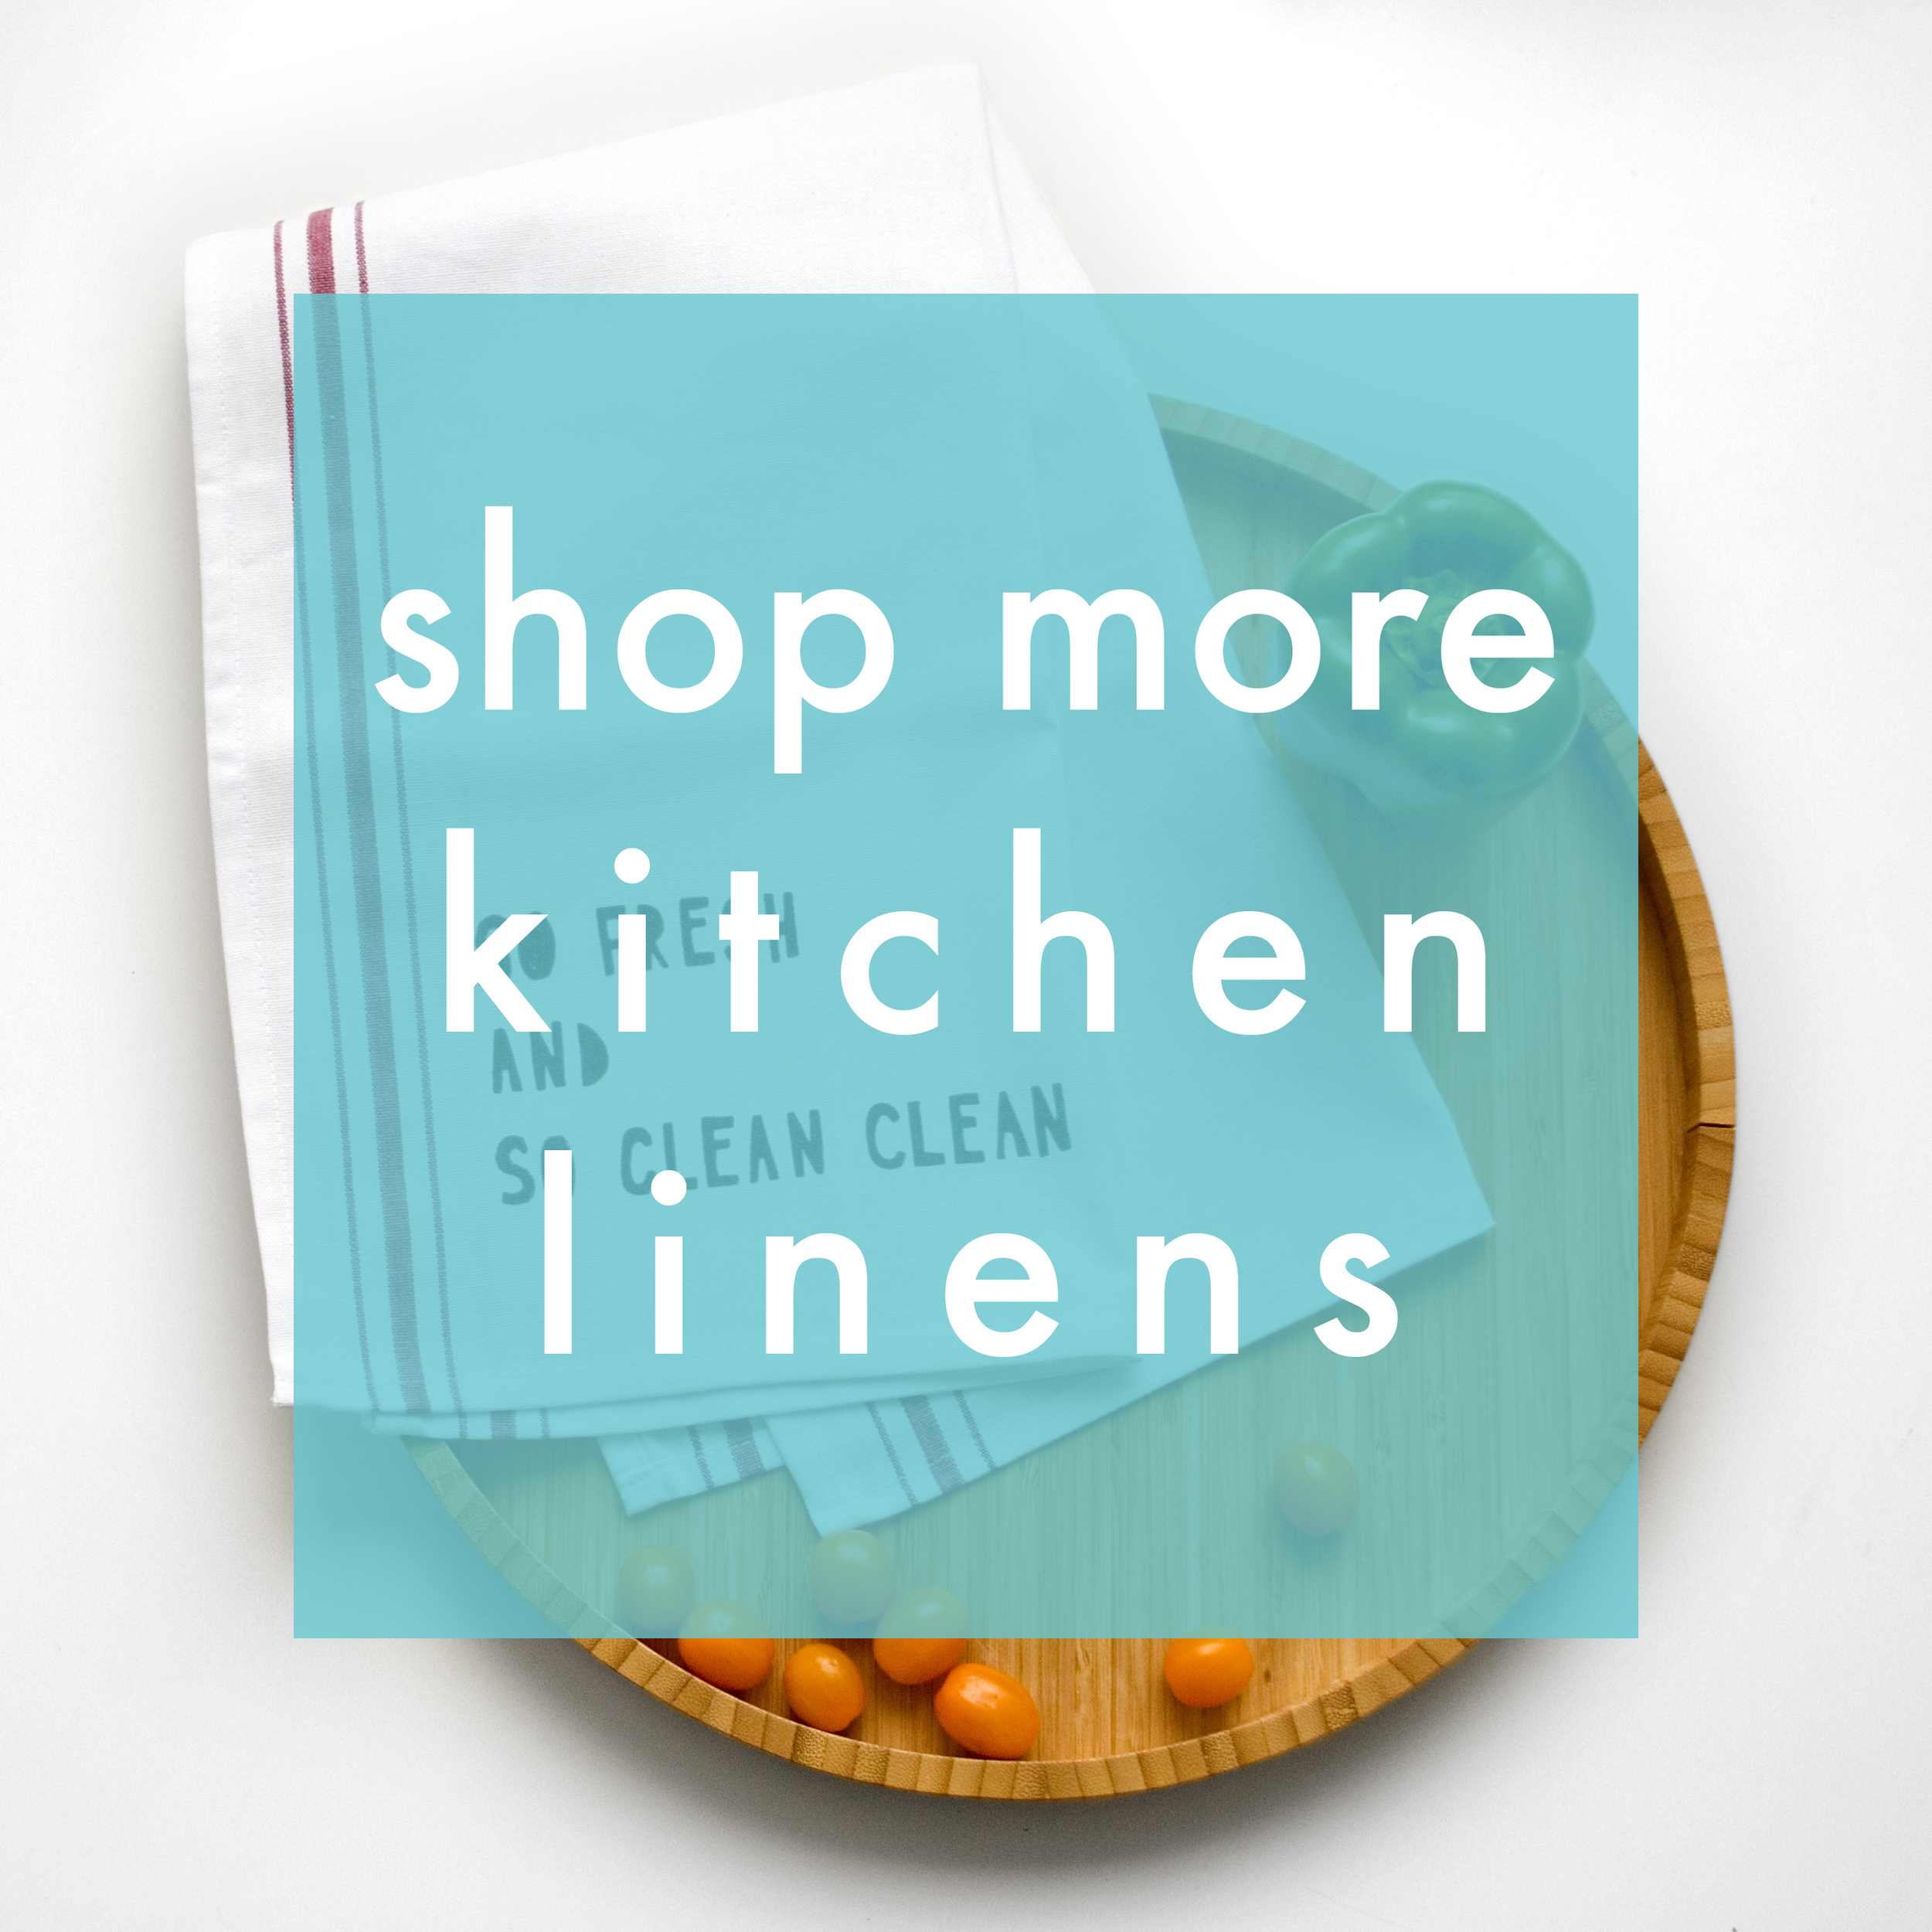 Kitchen Linens.jpg